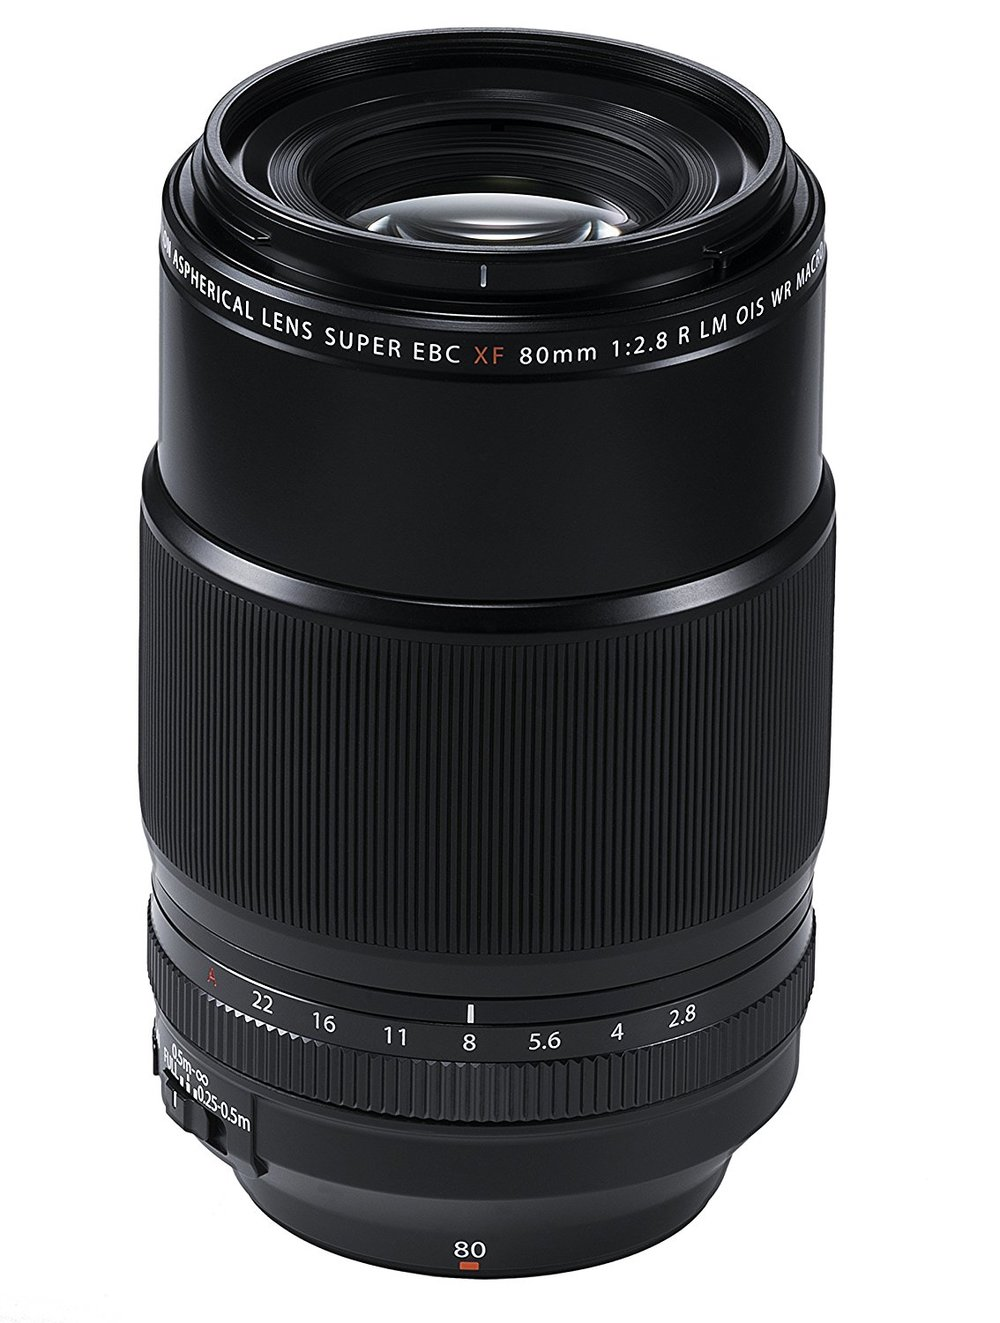 Fuji 80mm f/2.8 Macro OIS - The Fujinon 80mm F/2.8 Macro is a bit less visually dramatic than the 90mm F/2, which is a double edged sword.On one hand, it's shorter and slower, so it can be seen a more of an all-arounder and less of a specialized portrait – specifically head shot – lens. But on the other hand, the equivalent 120mm focal length is far more versatile than the 90mm F/2's equivalent 135mm focal length.The sharpness is near identical, but what really gives the 80mm F/2.8 it's spot as a top three Fuji portrait lens recommendation is the OIS (optical image stabilization) – and no, that's not only important for videographers.See, higher your focal length, the higher your shutter speed has to be to reduce camera shake (you can read more about that here). With the 80mm's OIS turned on, you can hand-hold this lens comfortable down to even 1/60th, allowing you to shoot in lower light situations with ease. From an exposure perspective, this more than makes up for the difference in aperture between the 80 and 90.And while the macro focusing distance isn't necessarily vital for photographers, it does allow you to get more creative at photographing your subjects details: cupids bow, iris, and more.